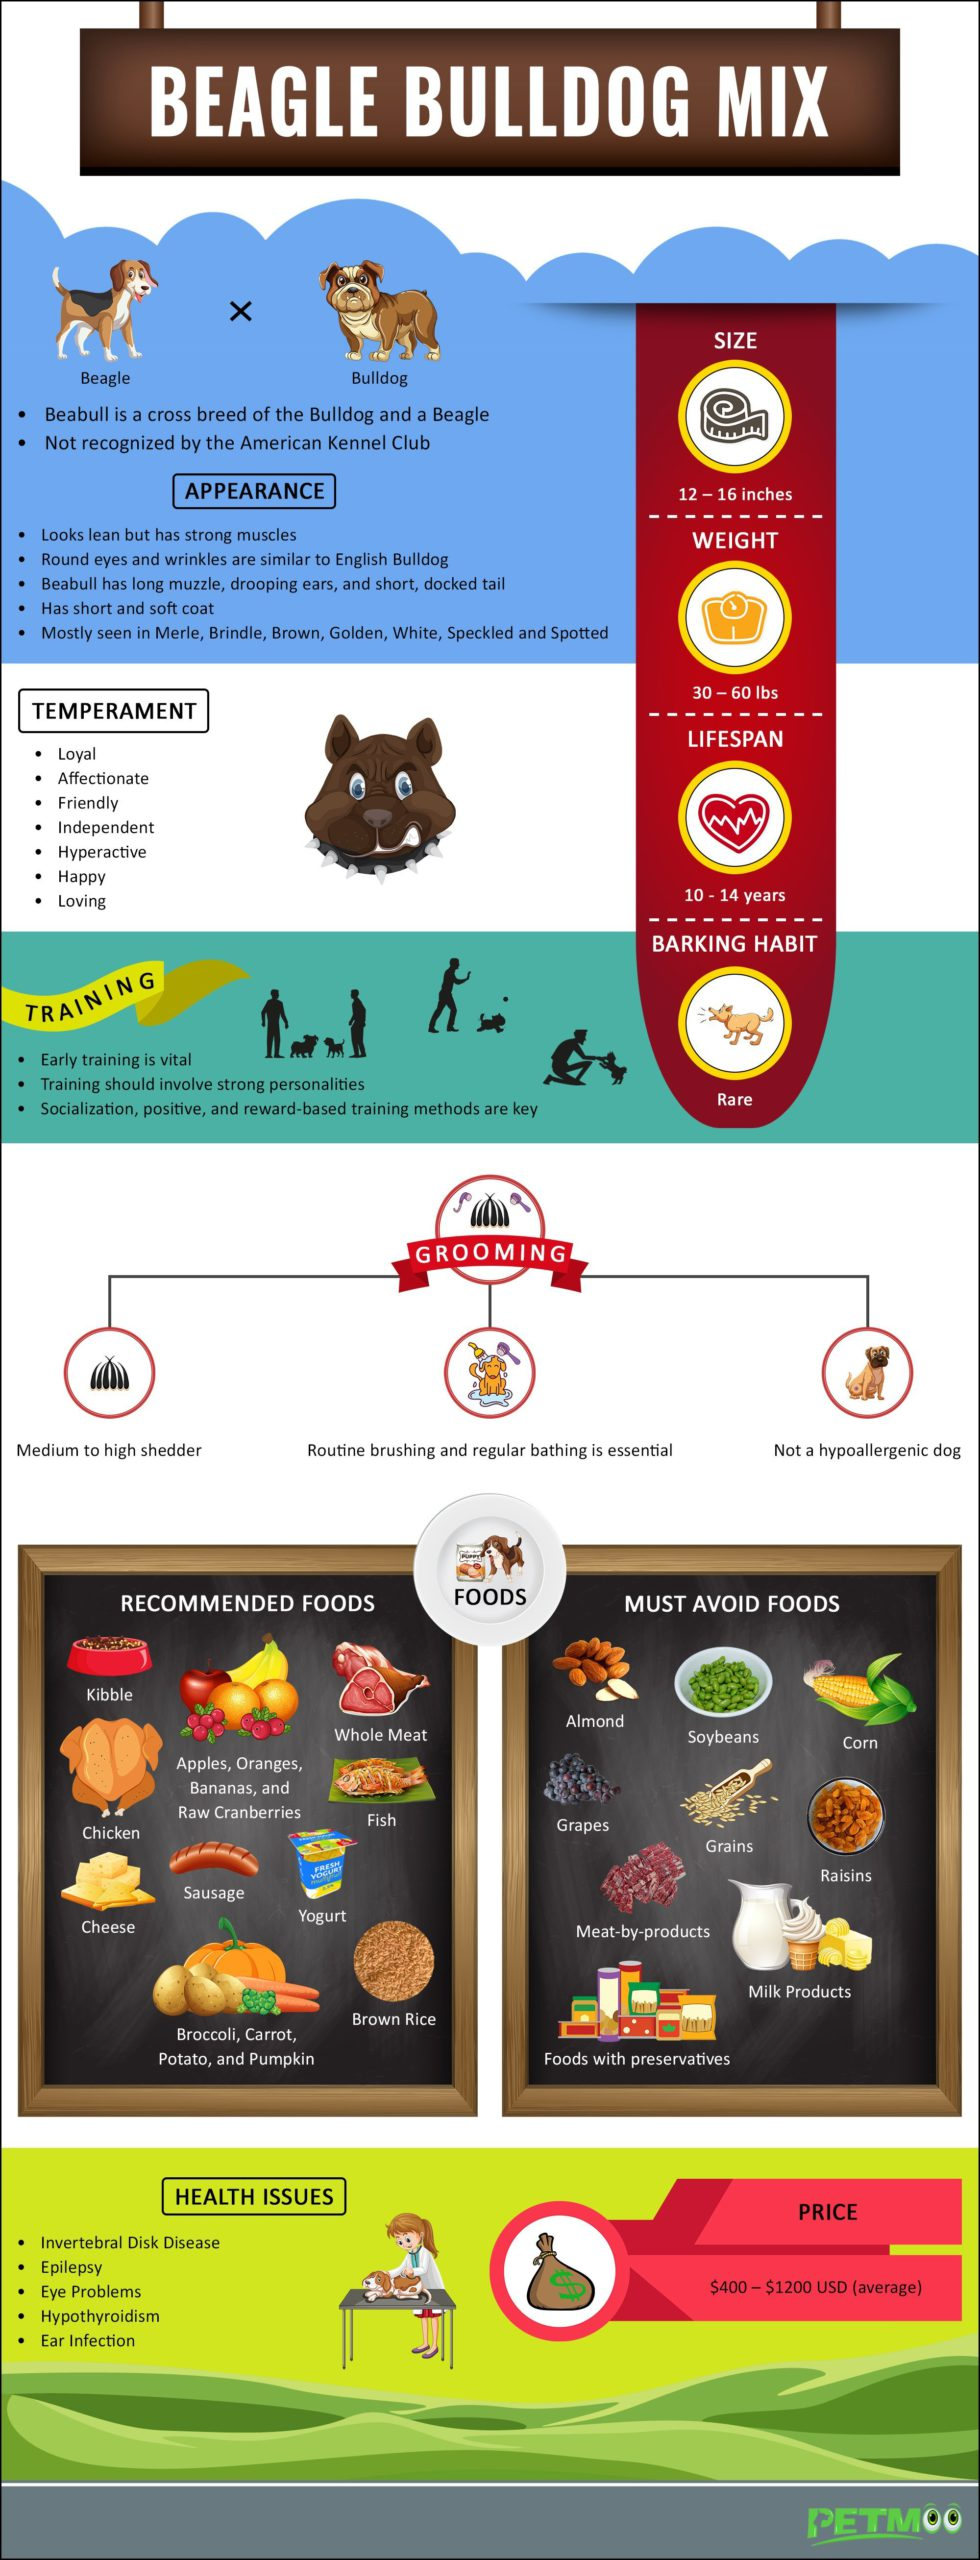 Beagle Bulldog Mix Infographic